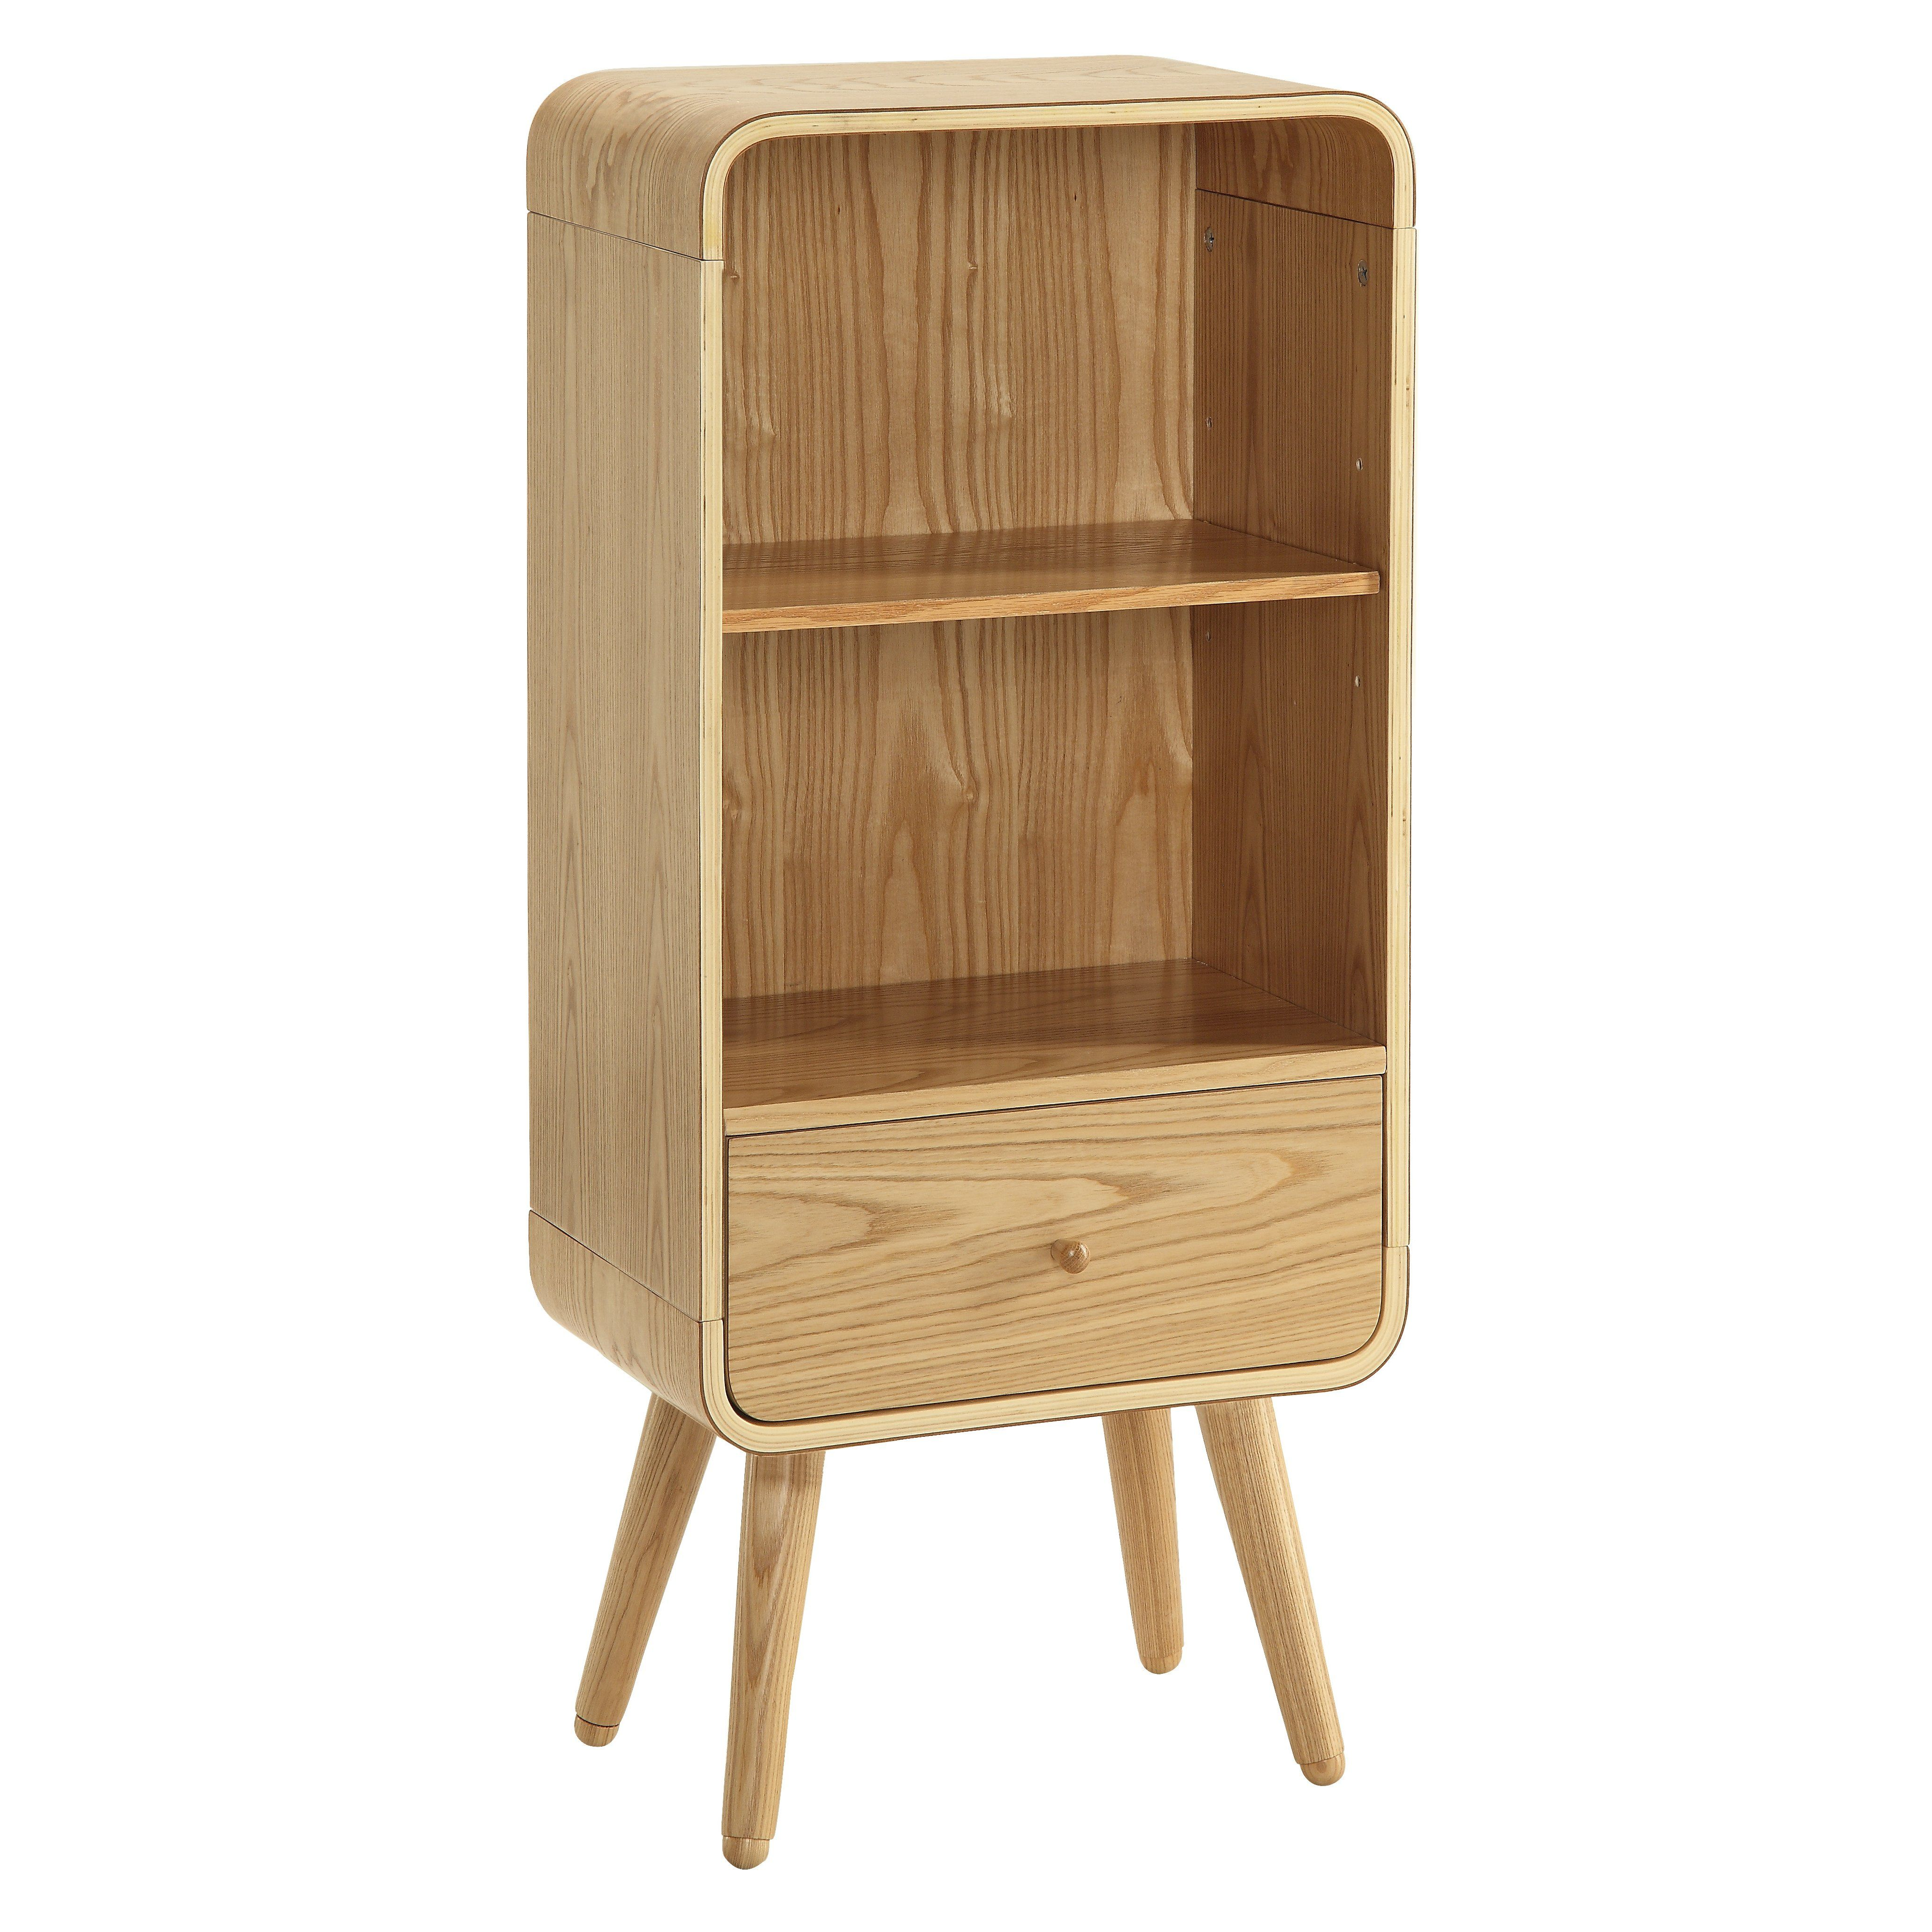 Low Storage Cabinet Retro Low Narrow Bookcase Vintage Style Shelving Storage Cabinet